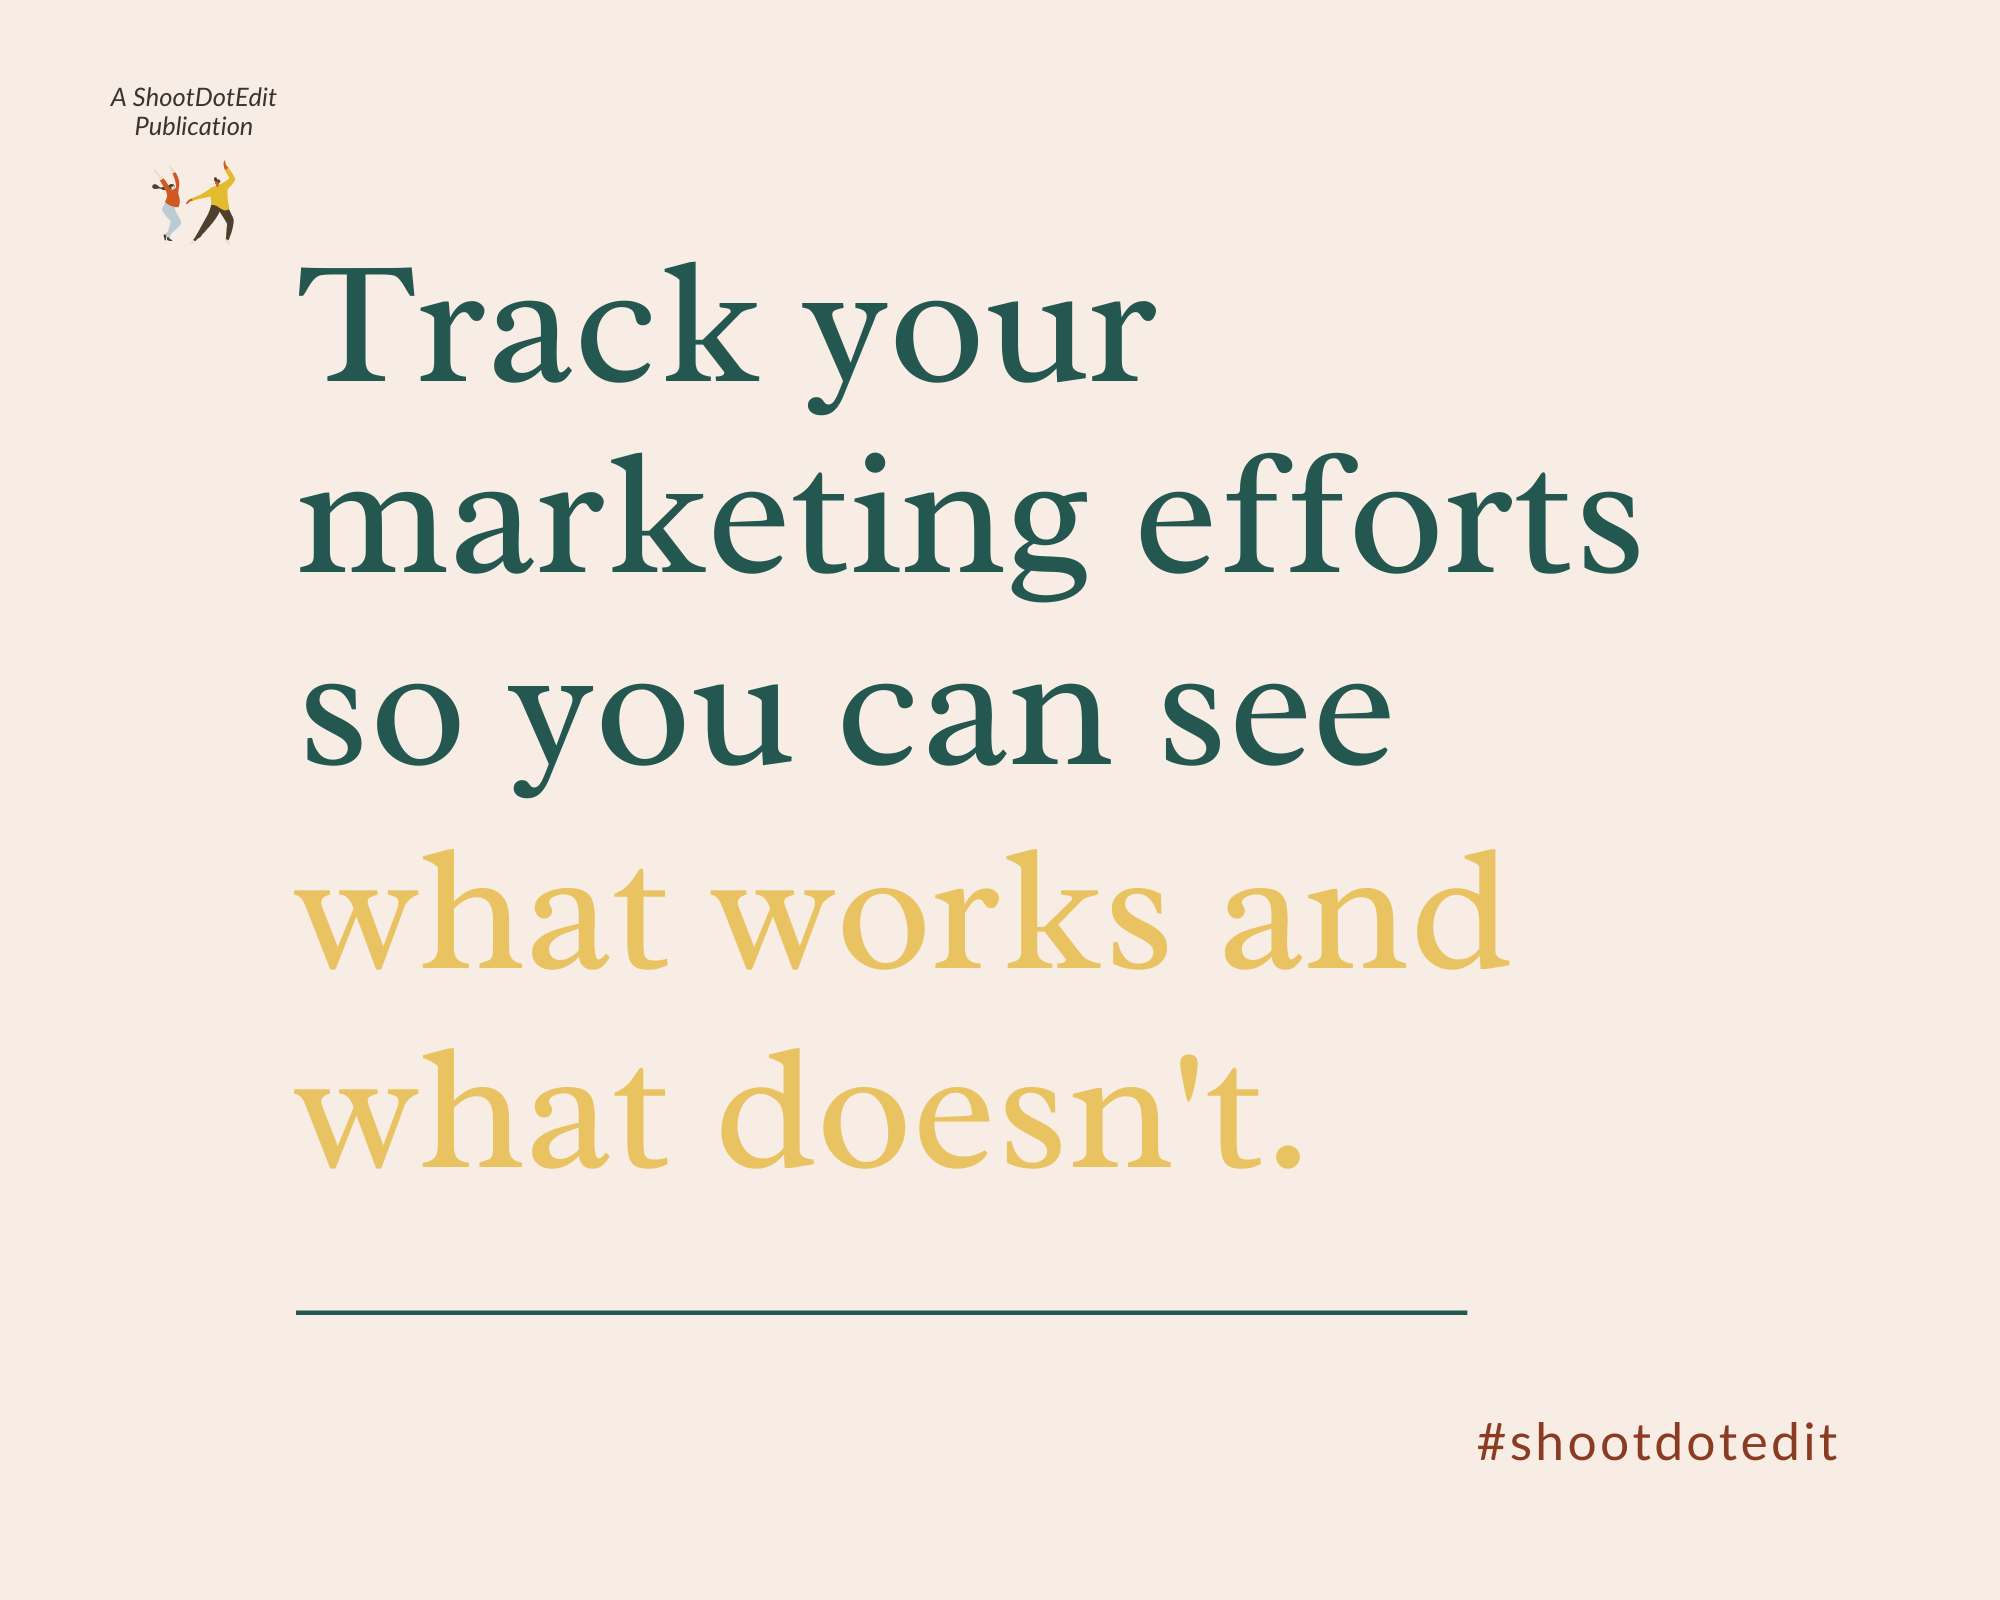 Infographic stating track your marketing efforts so you can see what works and what does not